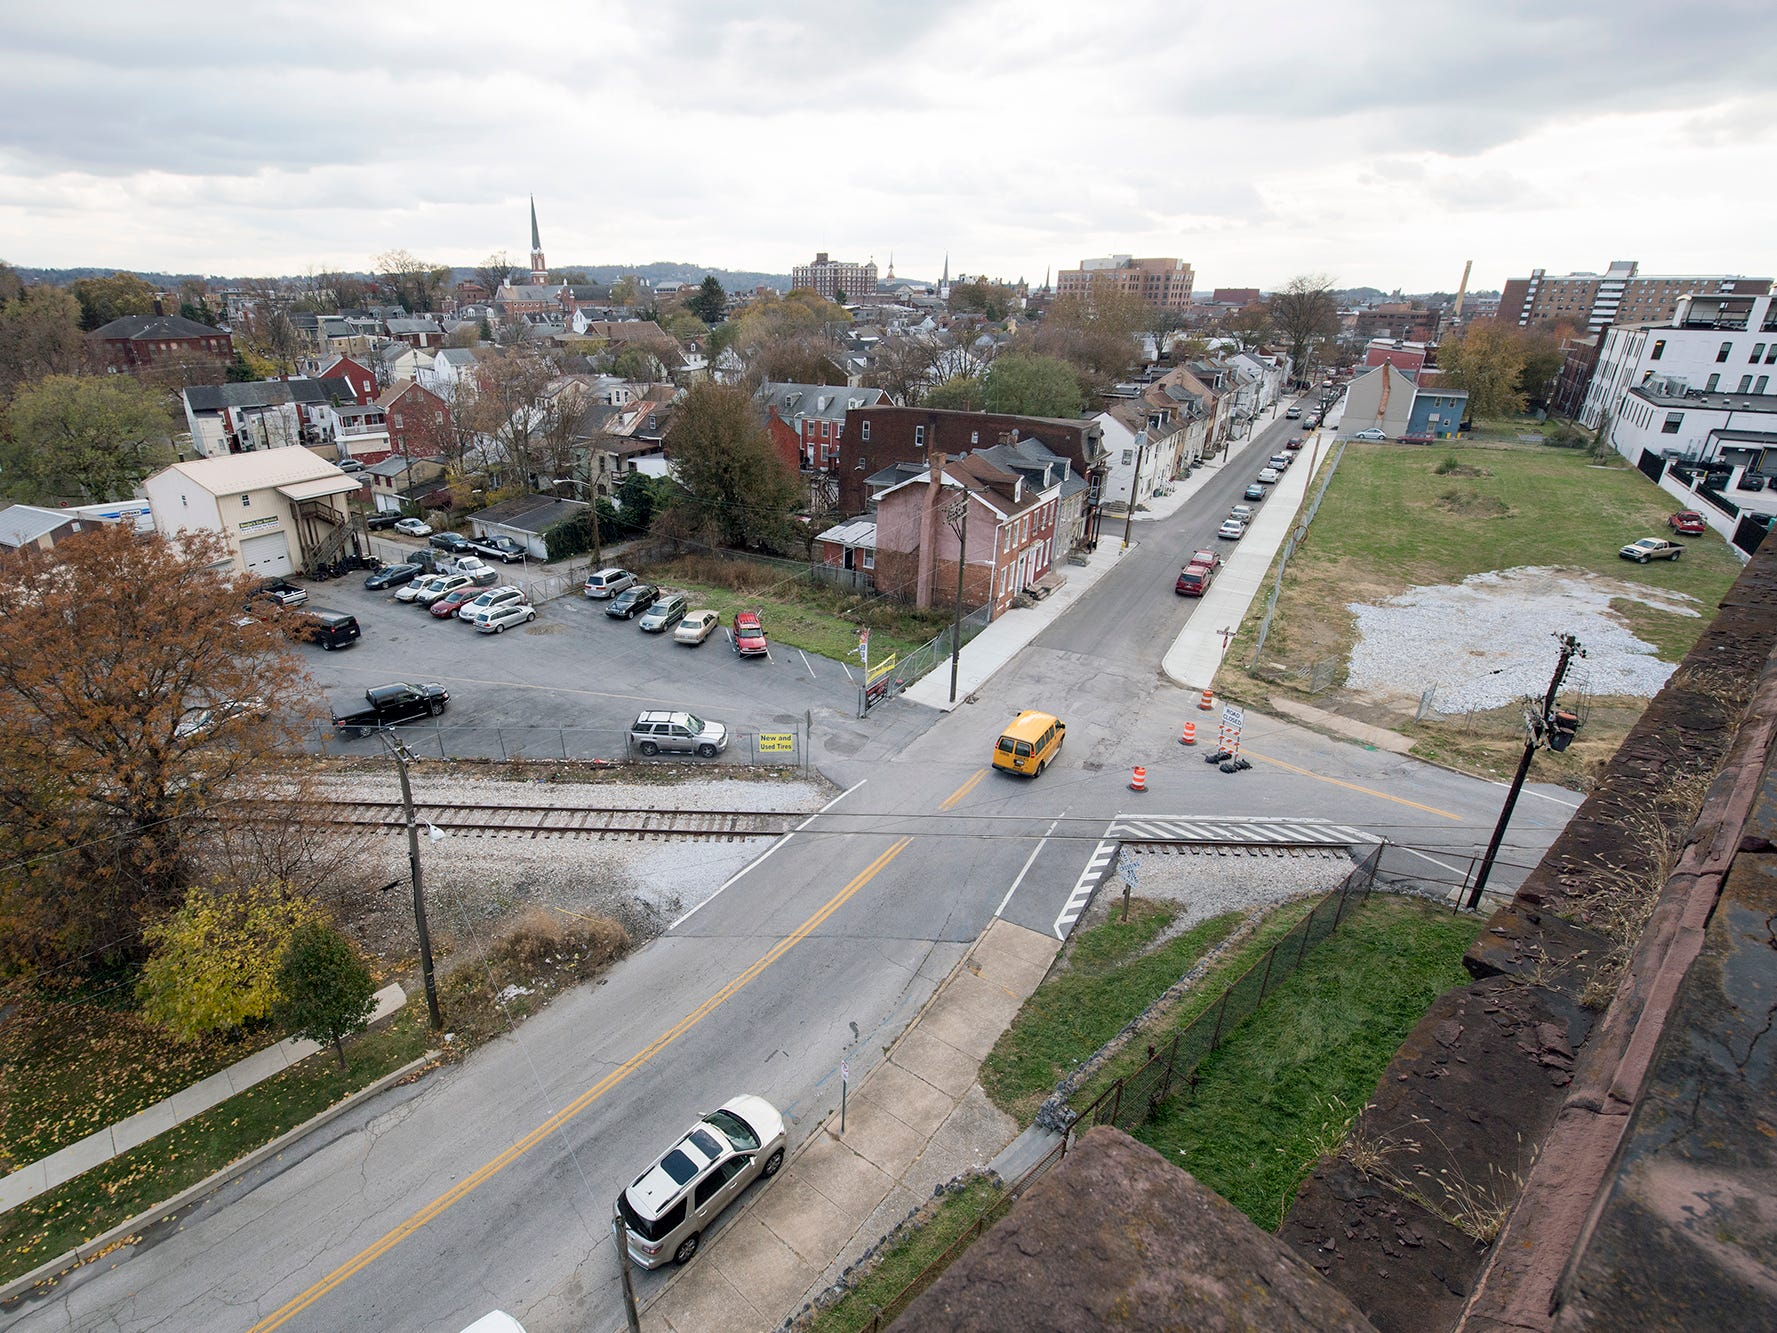 This view is looking across York from the roof of the old York County Prison.